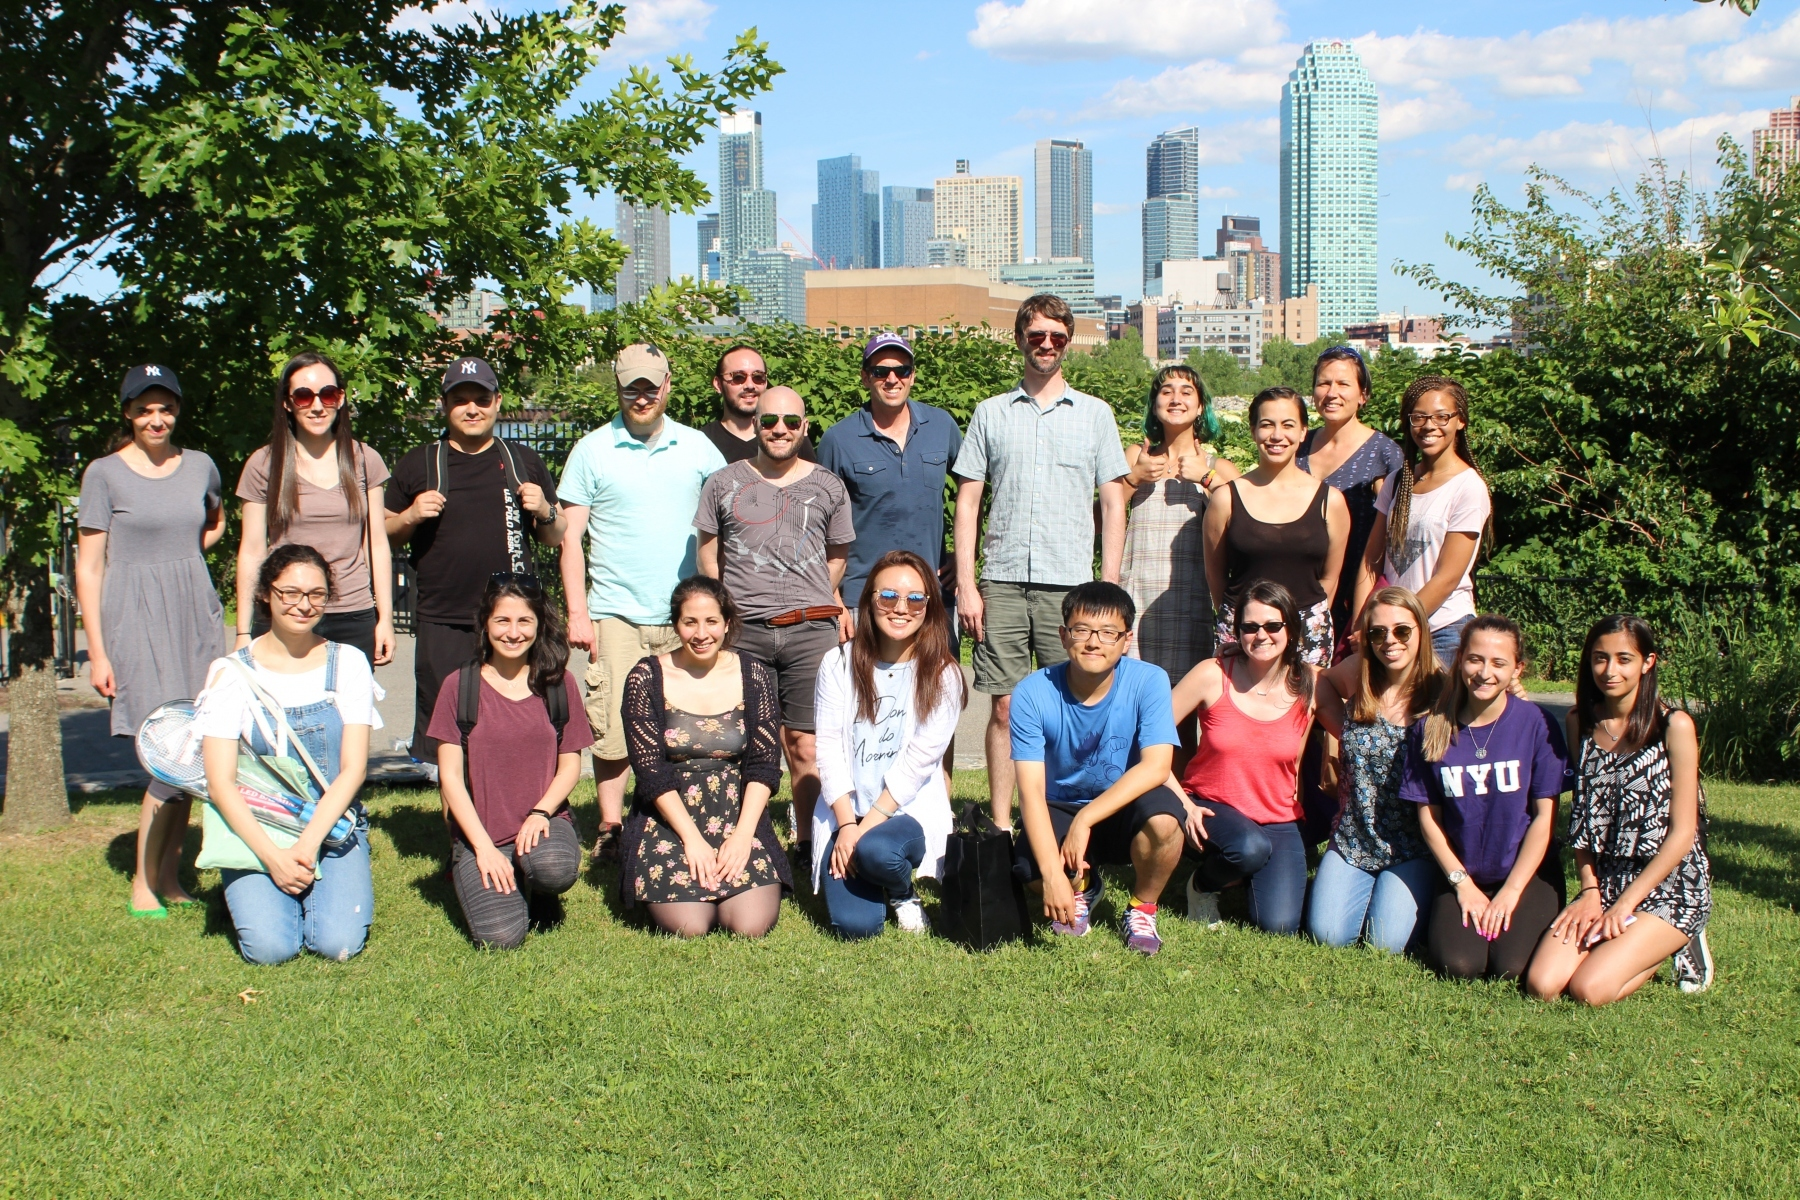 Gresham and Vogel Lab picnic 2018